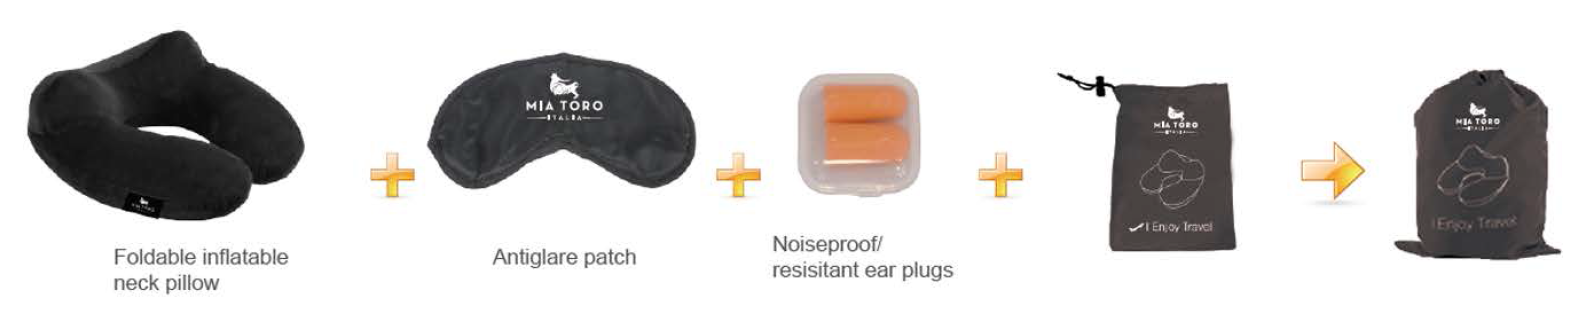 Travel Accessories Set (Neck Pillow, Sleep Mask, Ear Plugs, and More)